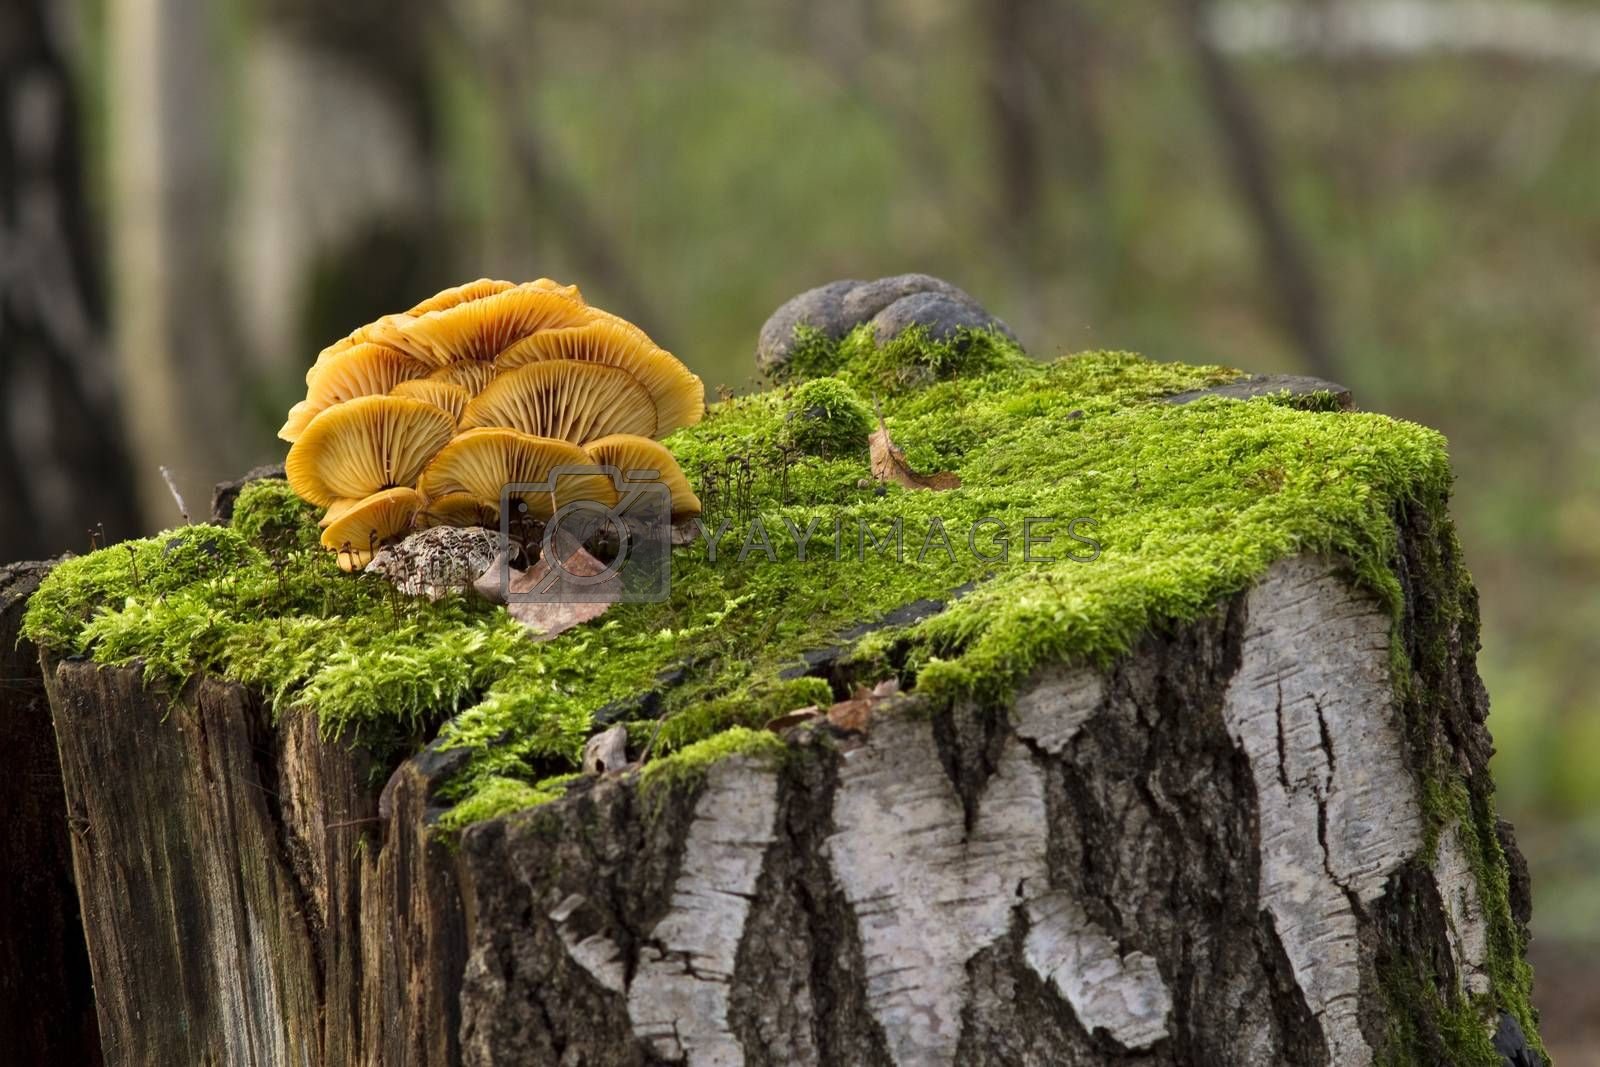 Royalty free image of mushrooms, growing on a tree stump by phortcach